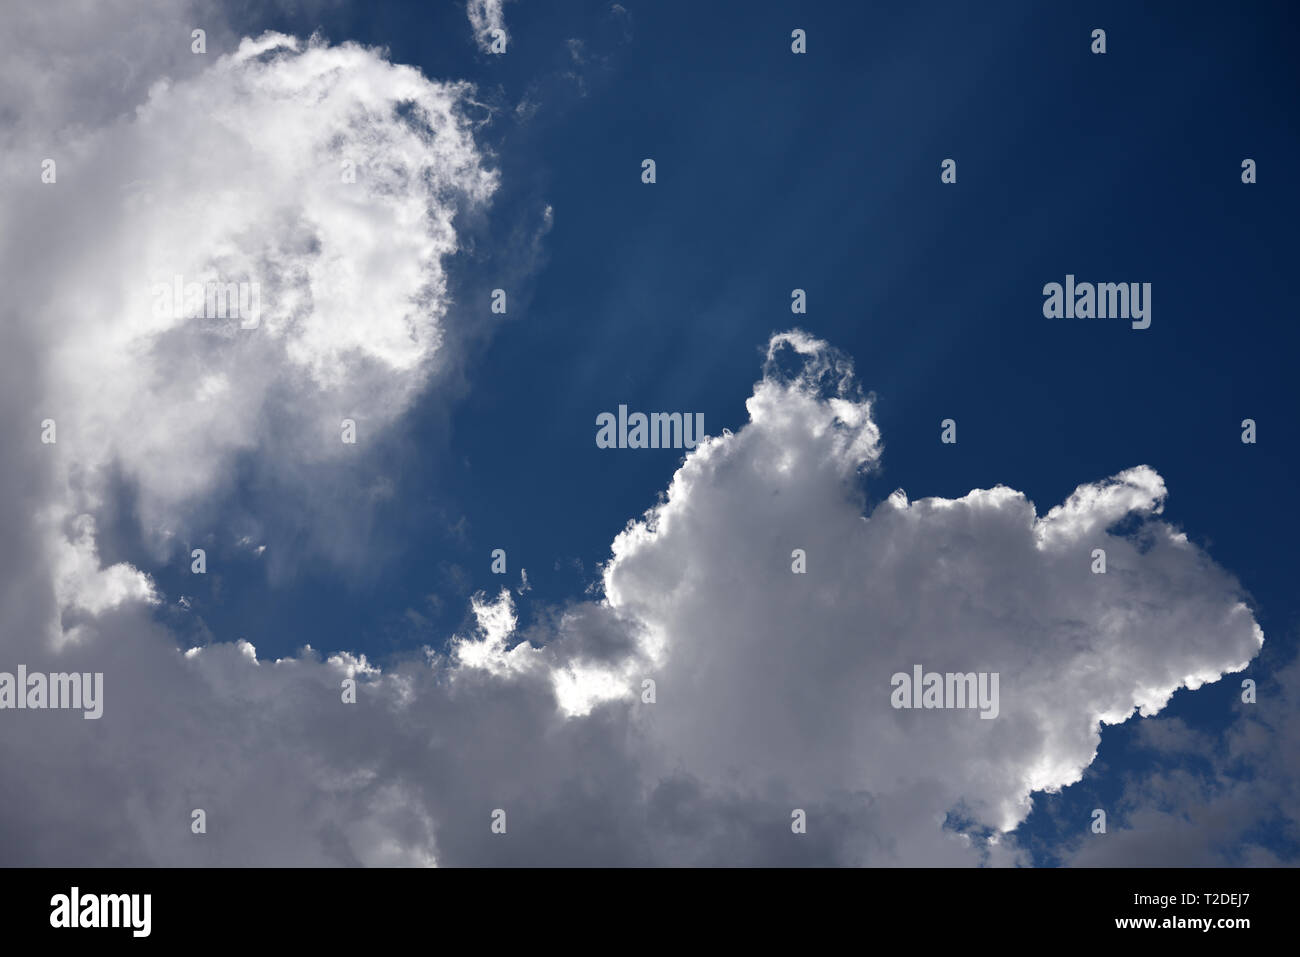 Rays of sunshine reflecting off fluffy white clouds and deep blue sky. - Stock Image